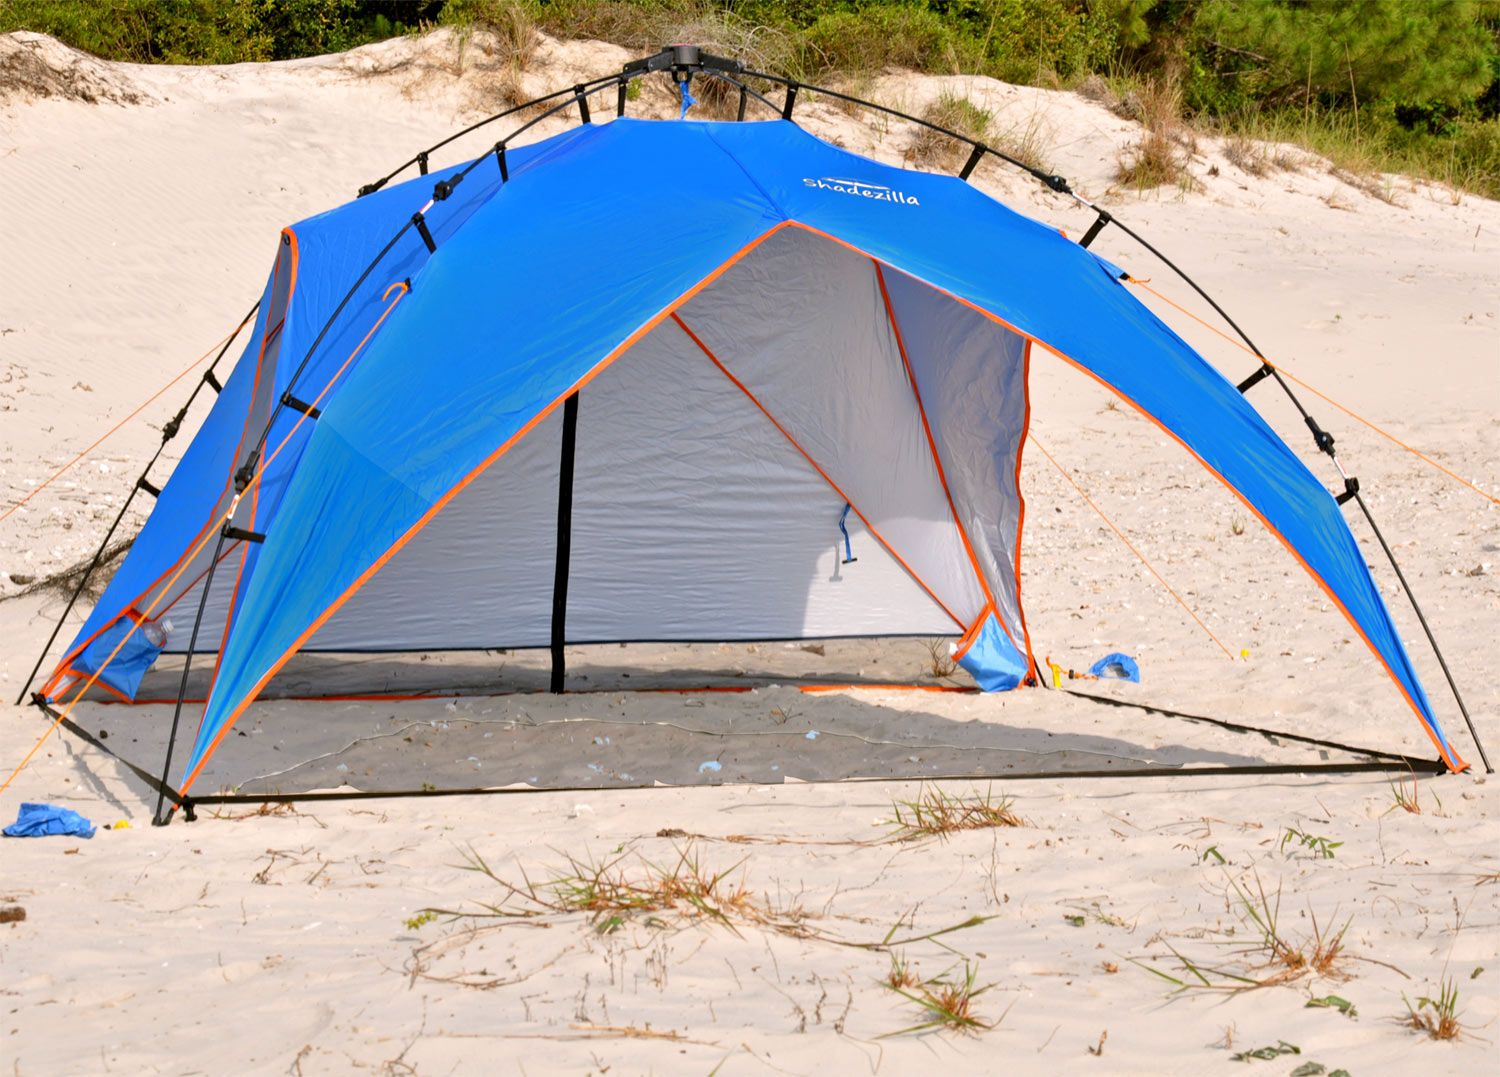 Platinum Plus Beach Shelter UPF 100 - Jumbo Pop Up for 4 persons & Platinum Plus Beach Shelter UPF 100 - Jumbo Pop Up for 4 persons ...